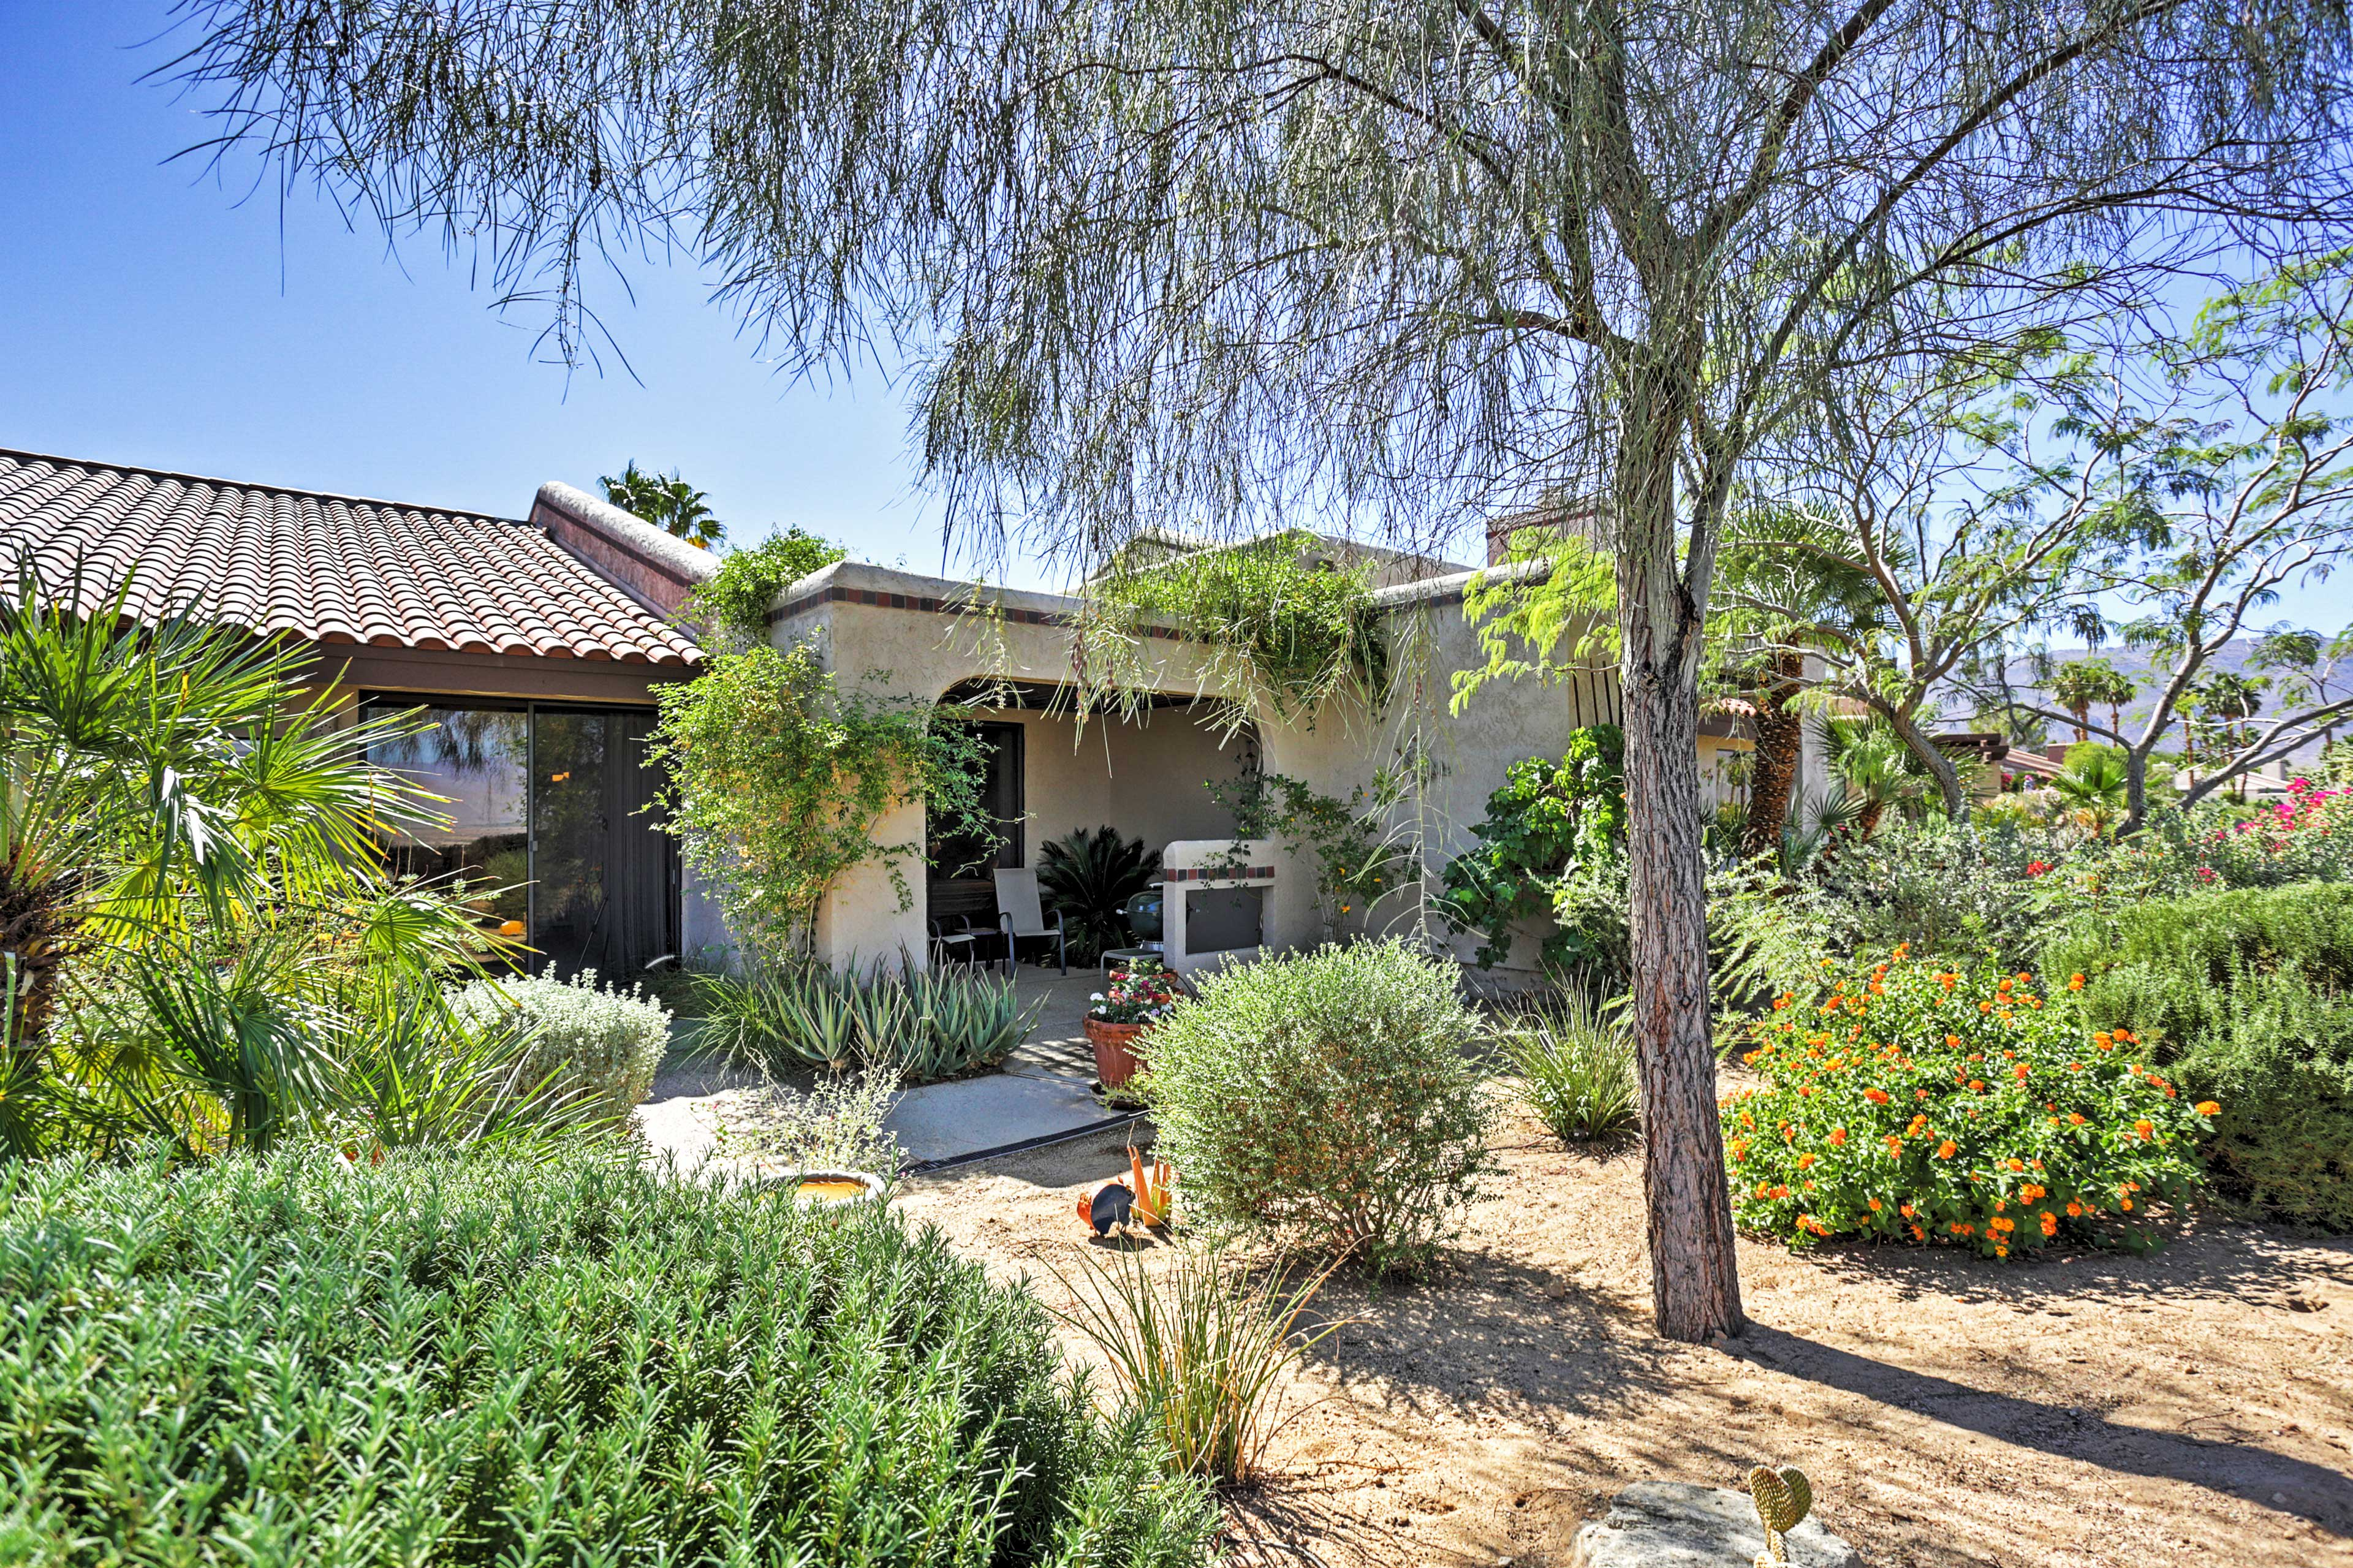 You'll find the flora and fauna of California sprinkled throughout the property!